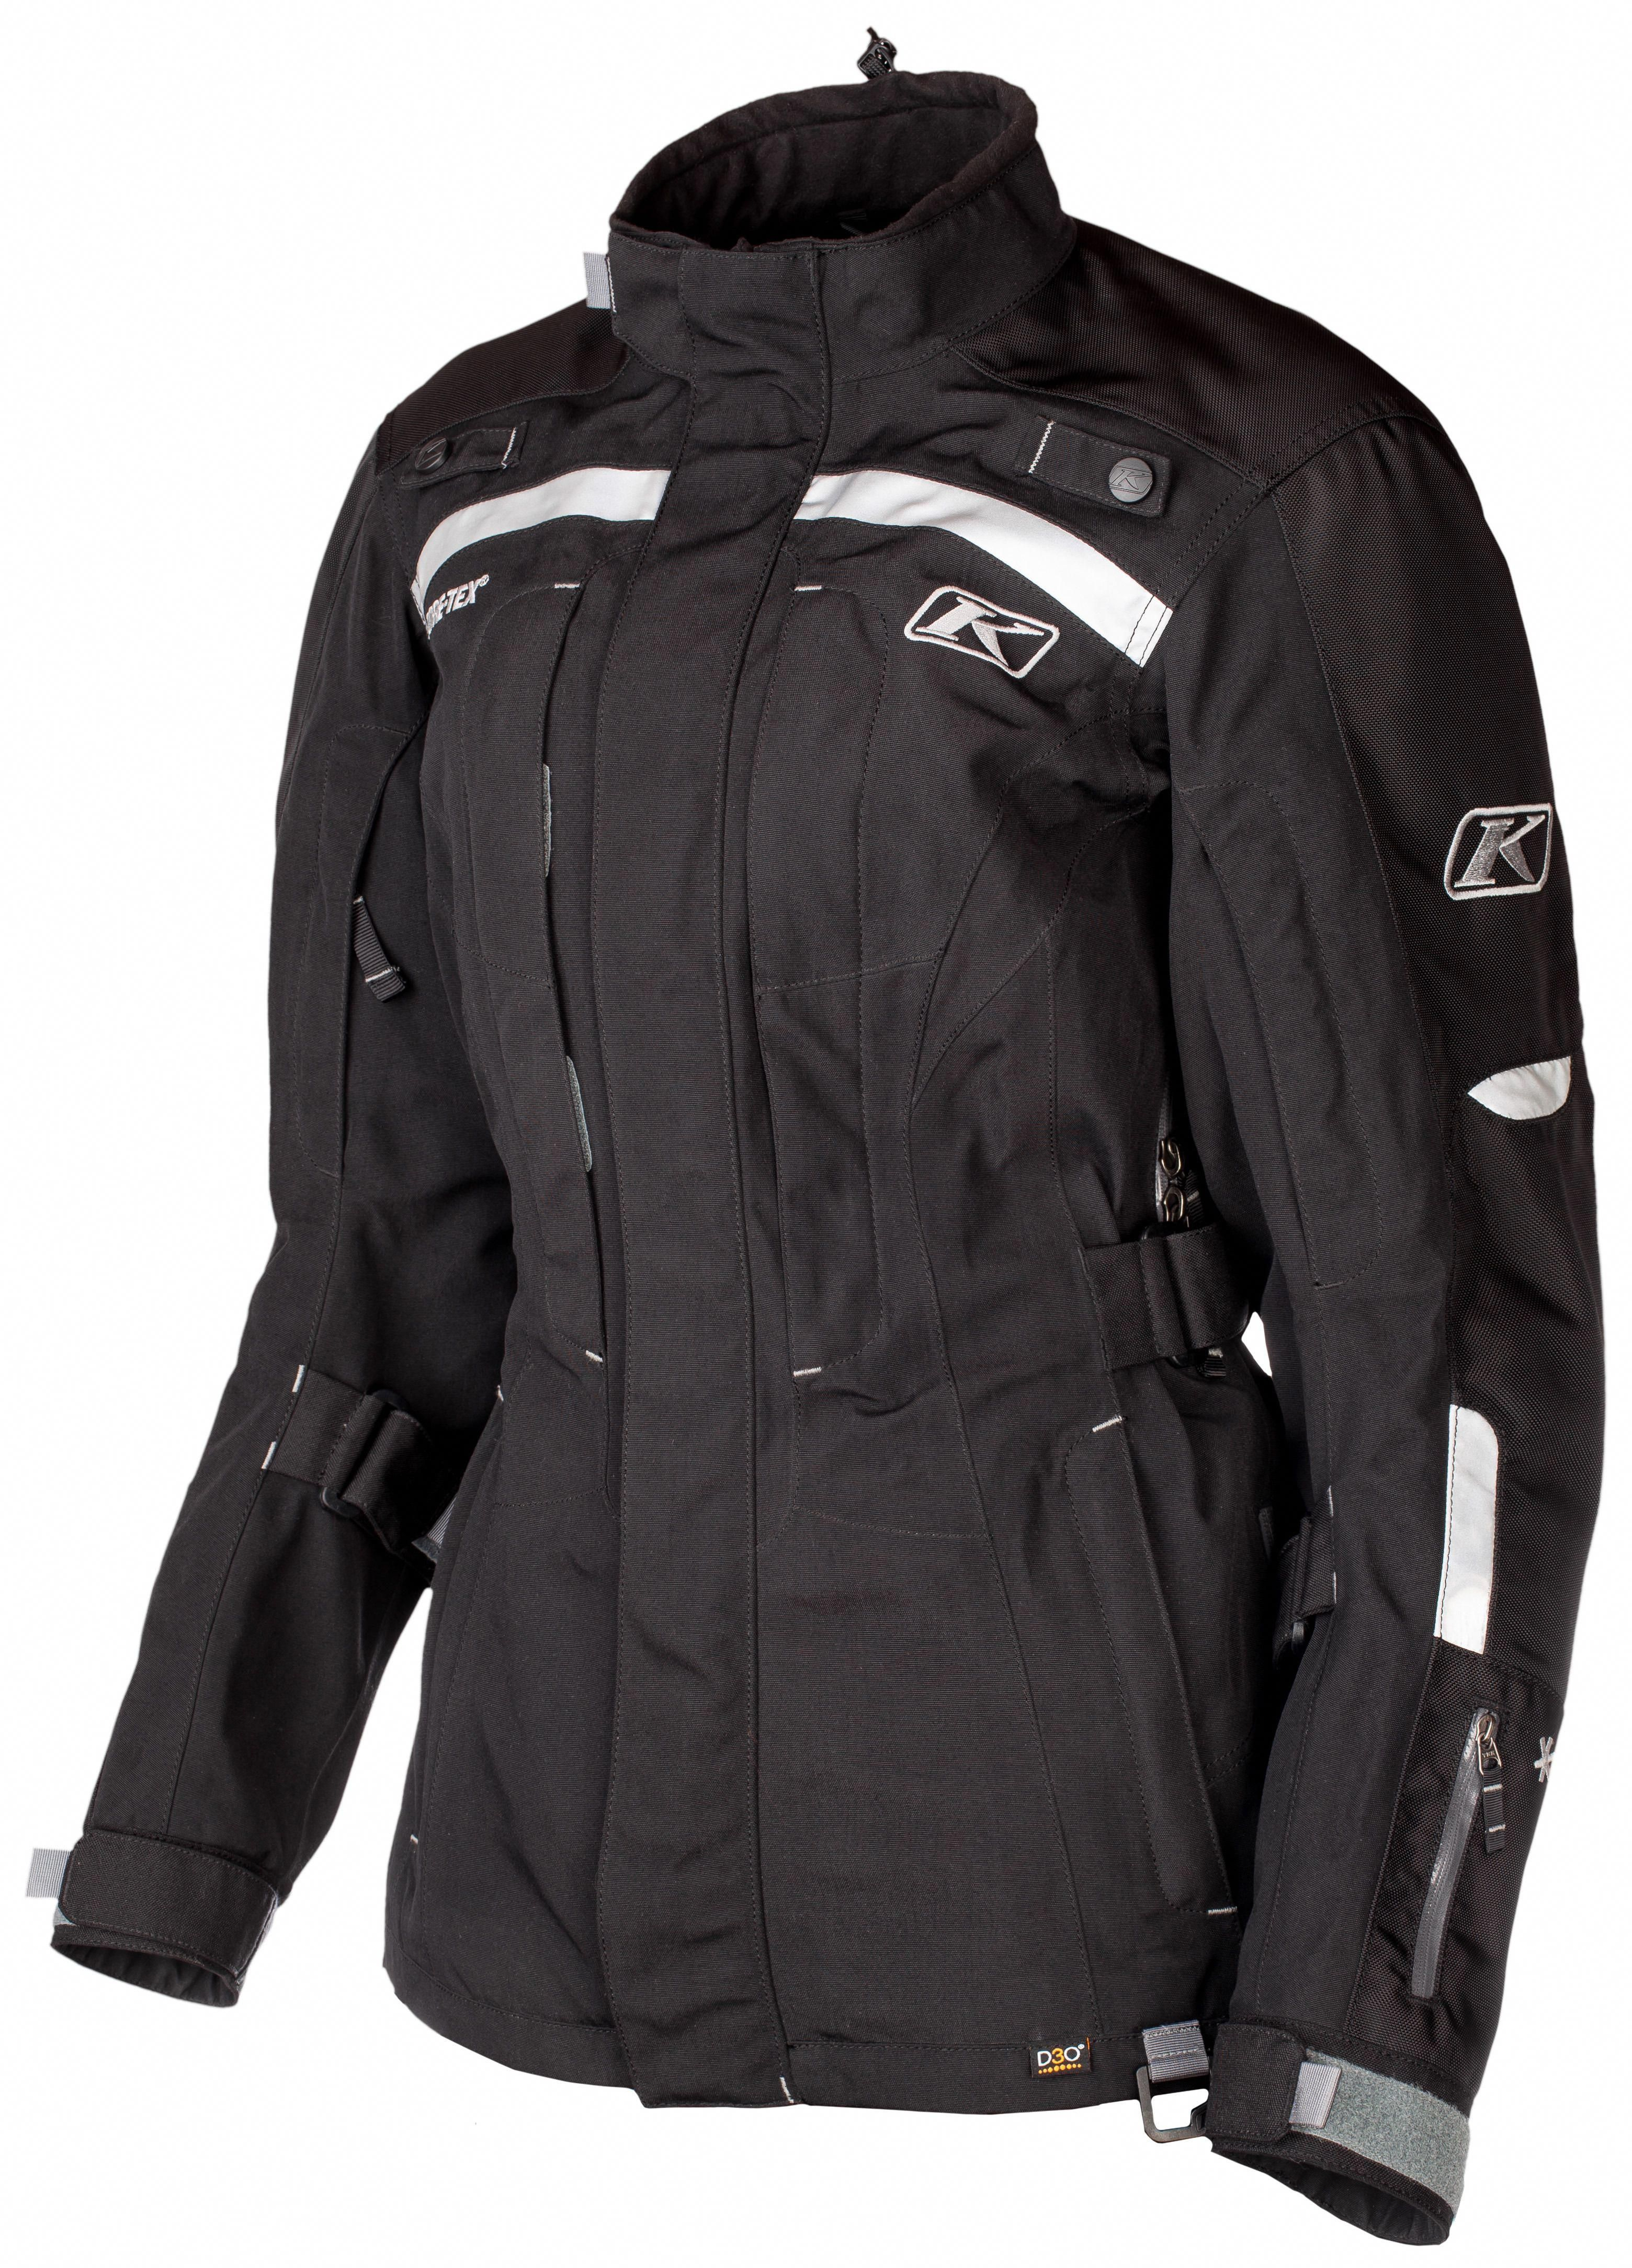 The Klim Altitude is a true woman's fullyfunctional